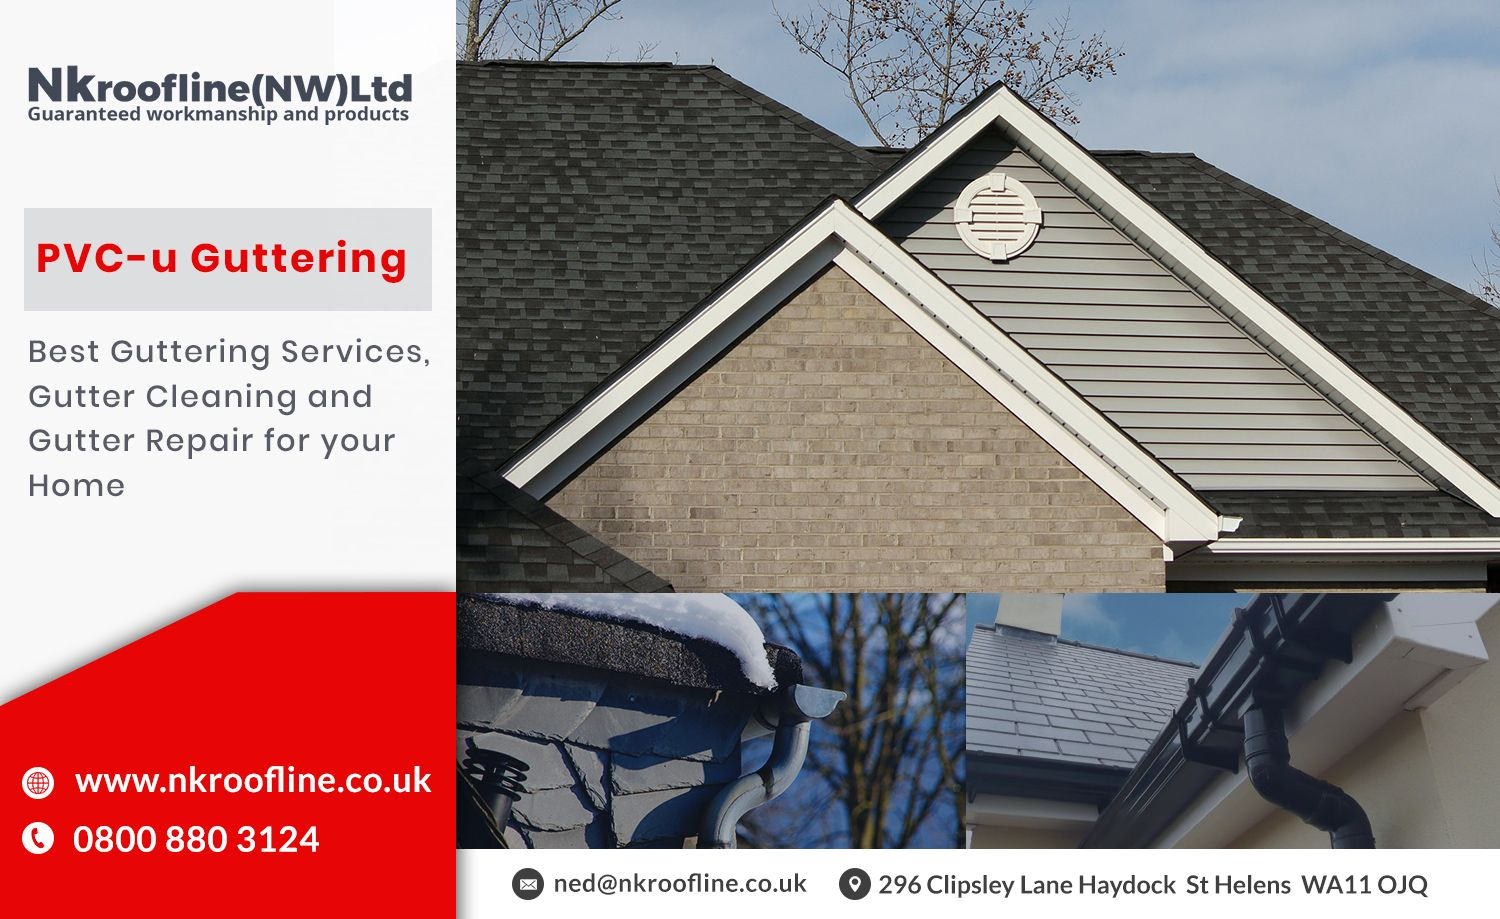 Fascias Soffits Guttering Supplier Near Me Uk Liverpool Wigan Bolton Cool Roof Roofing Services Best Roofing Company